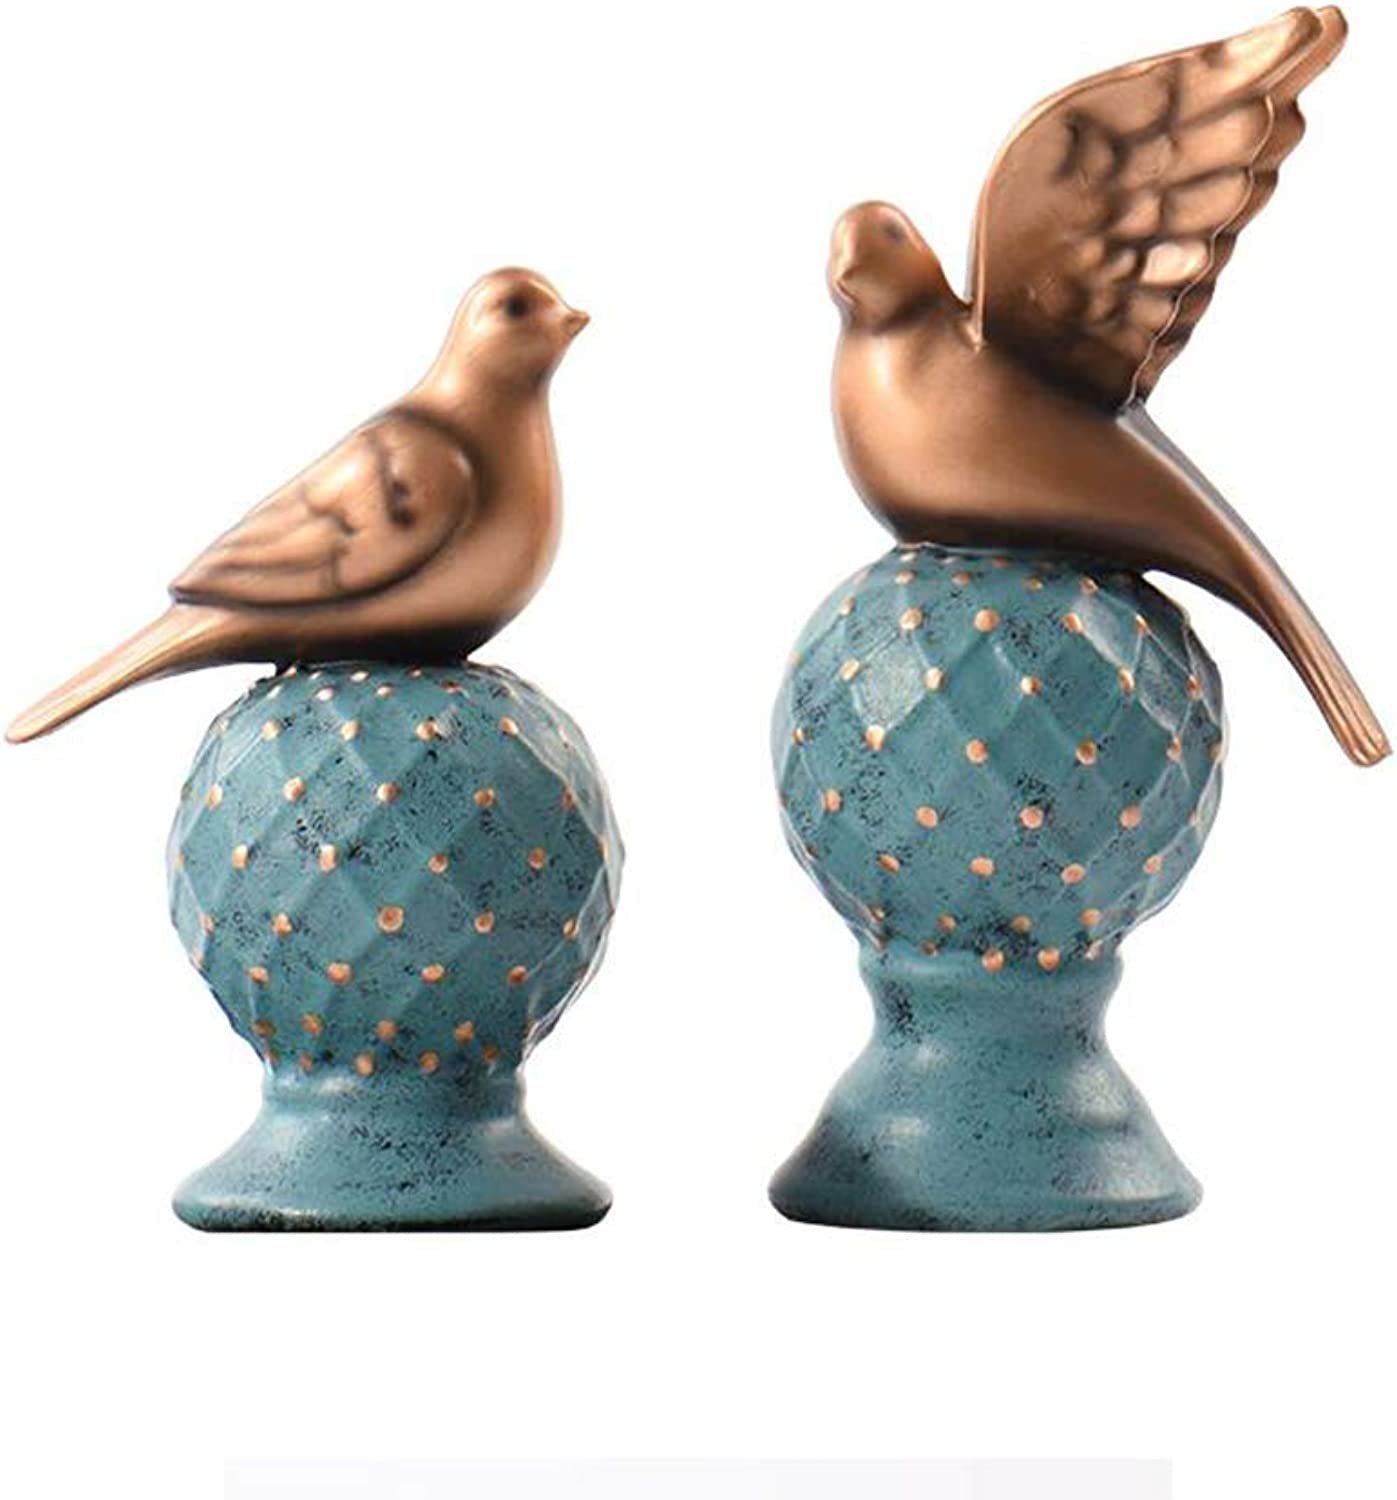 TIDLT Decoración De Pájaños Pequeos, Decoración De Escritorio De Resina (2 Piezas) (Color   Bird Ornament (2 Pieces))